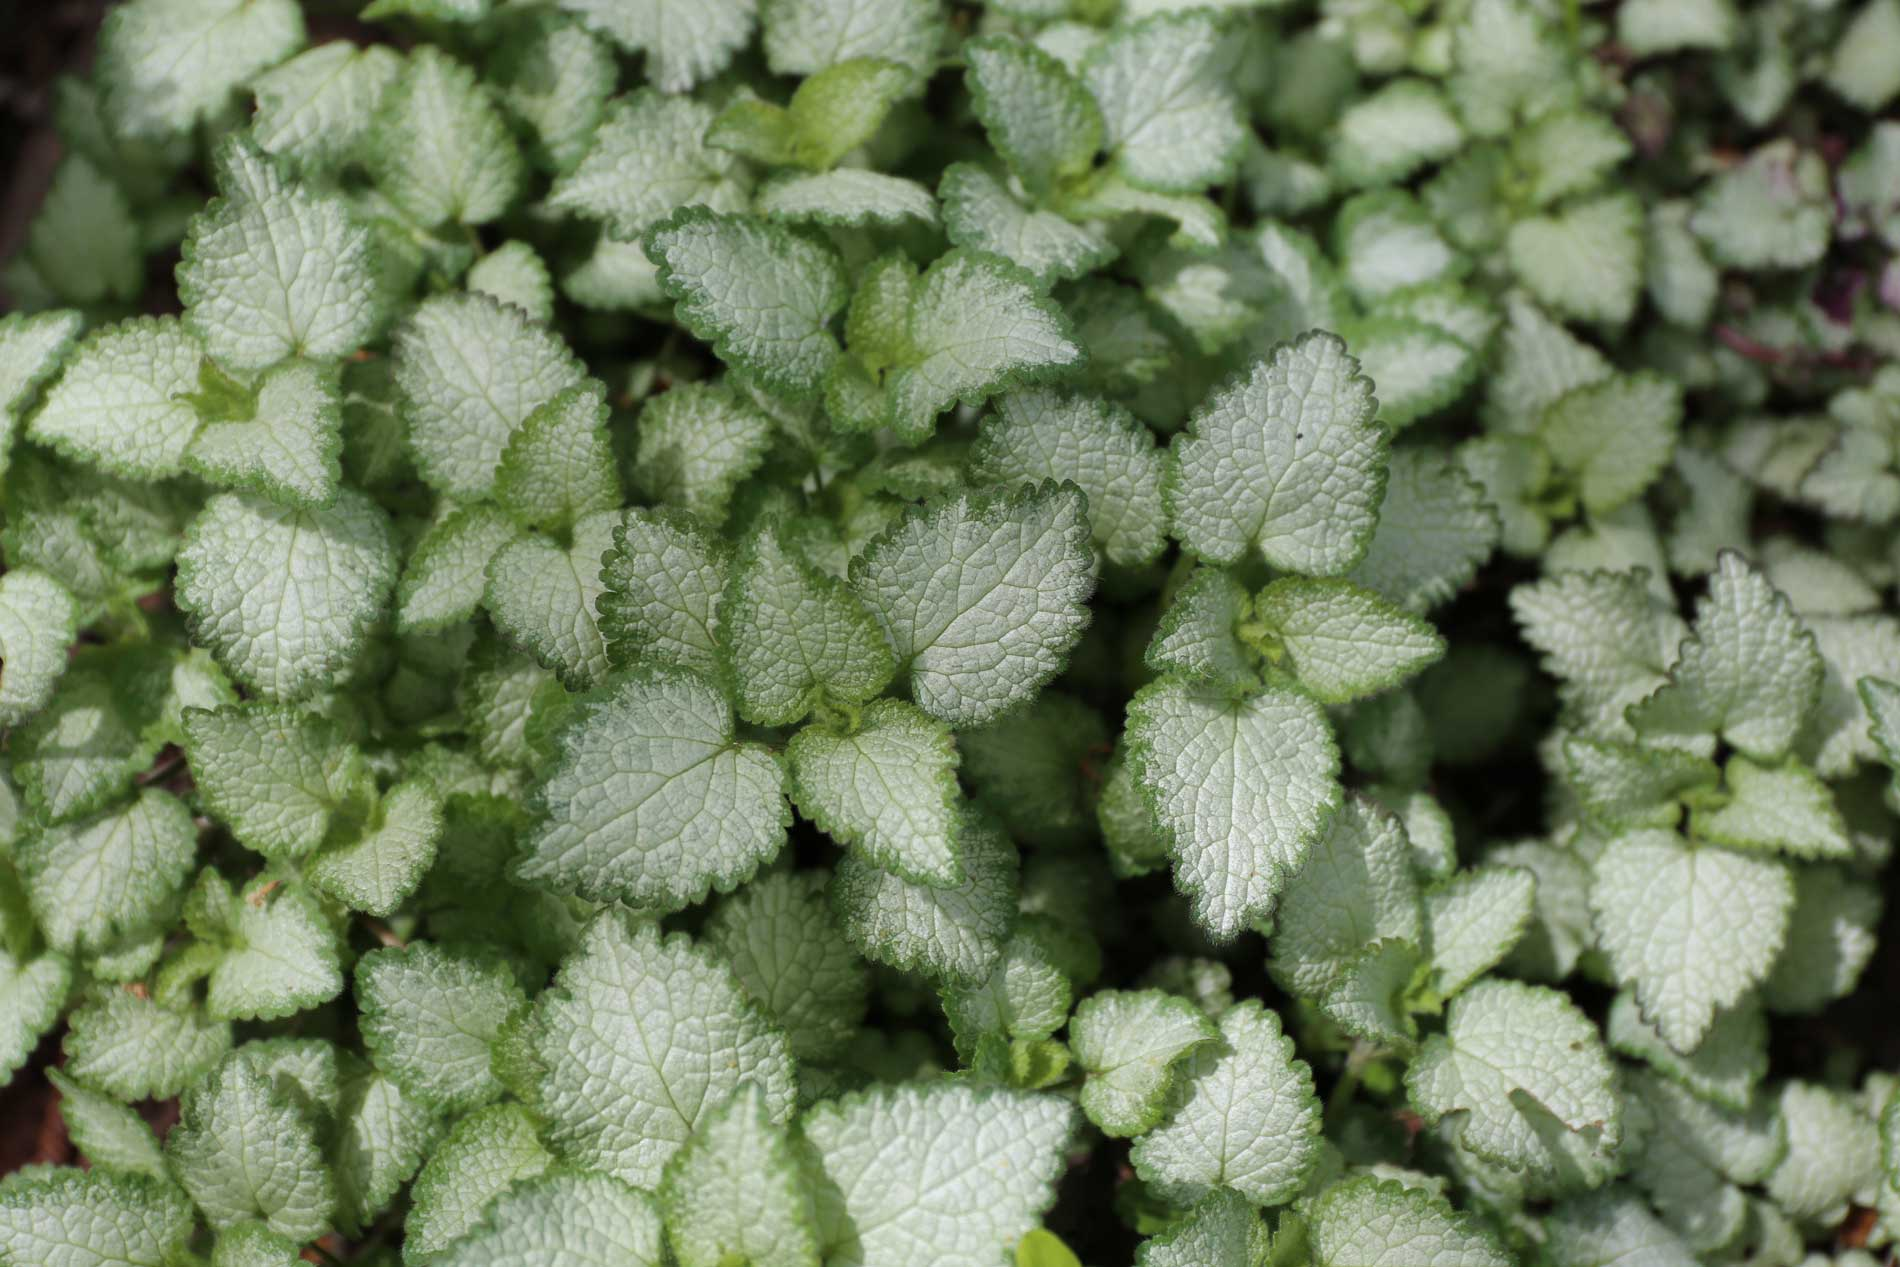 Lamium-Best-Companion-Plants-for-Hostas—Longfield-Gardens